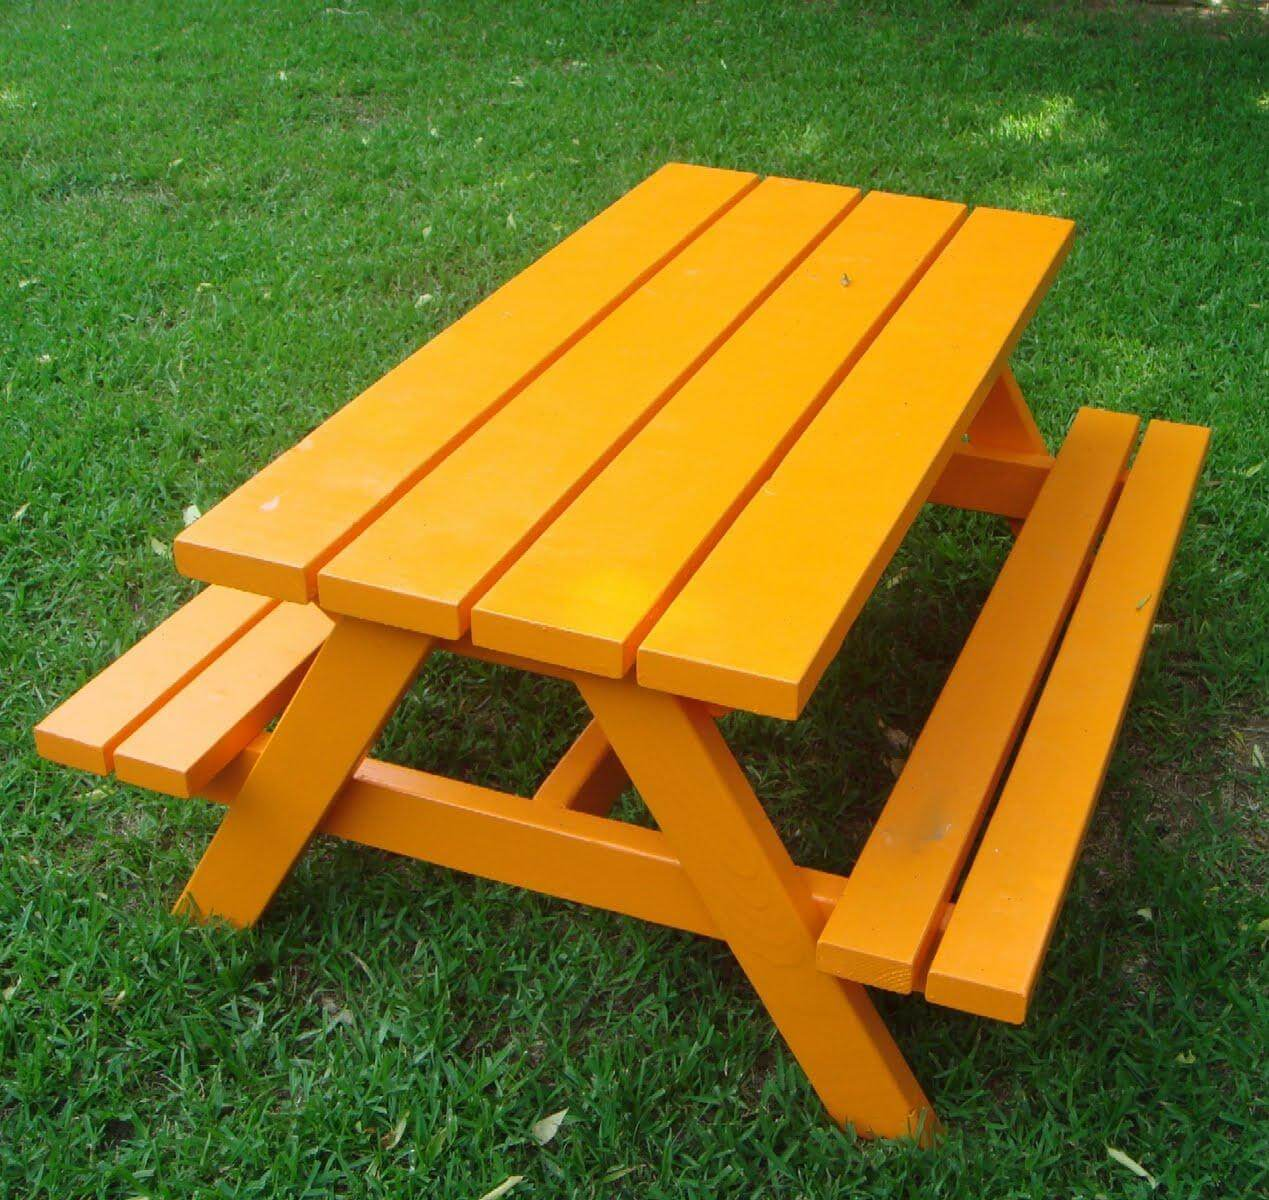 Larger Child-Sized Picnic Table Plans